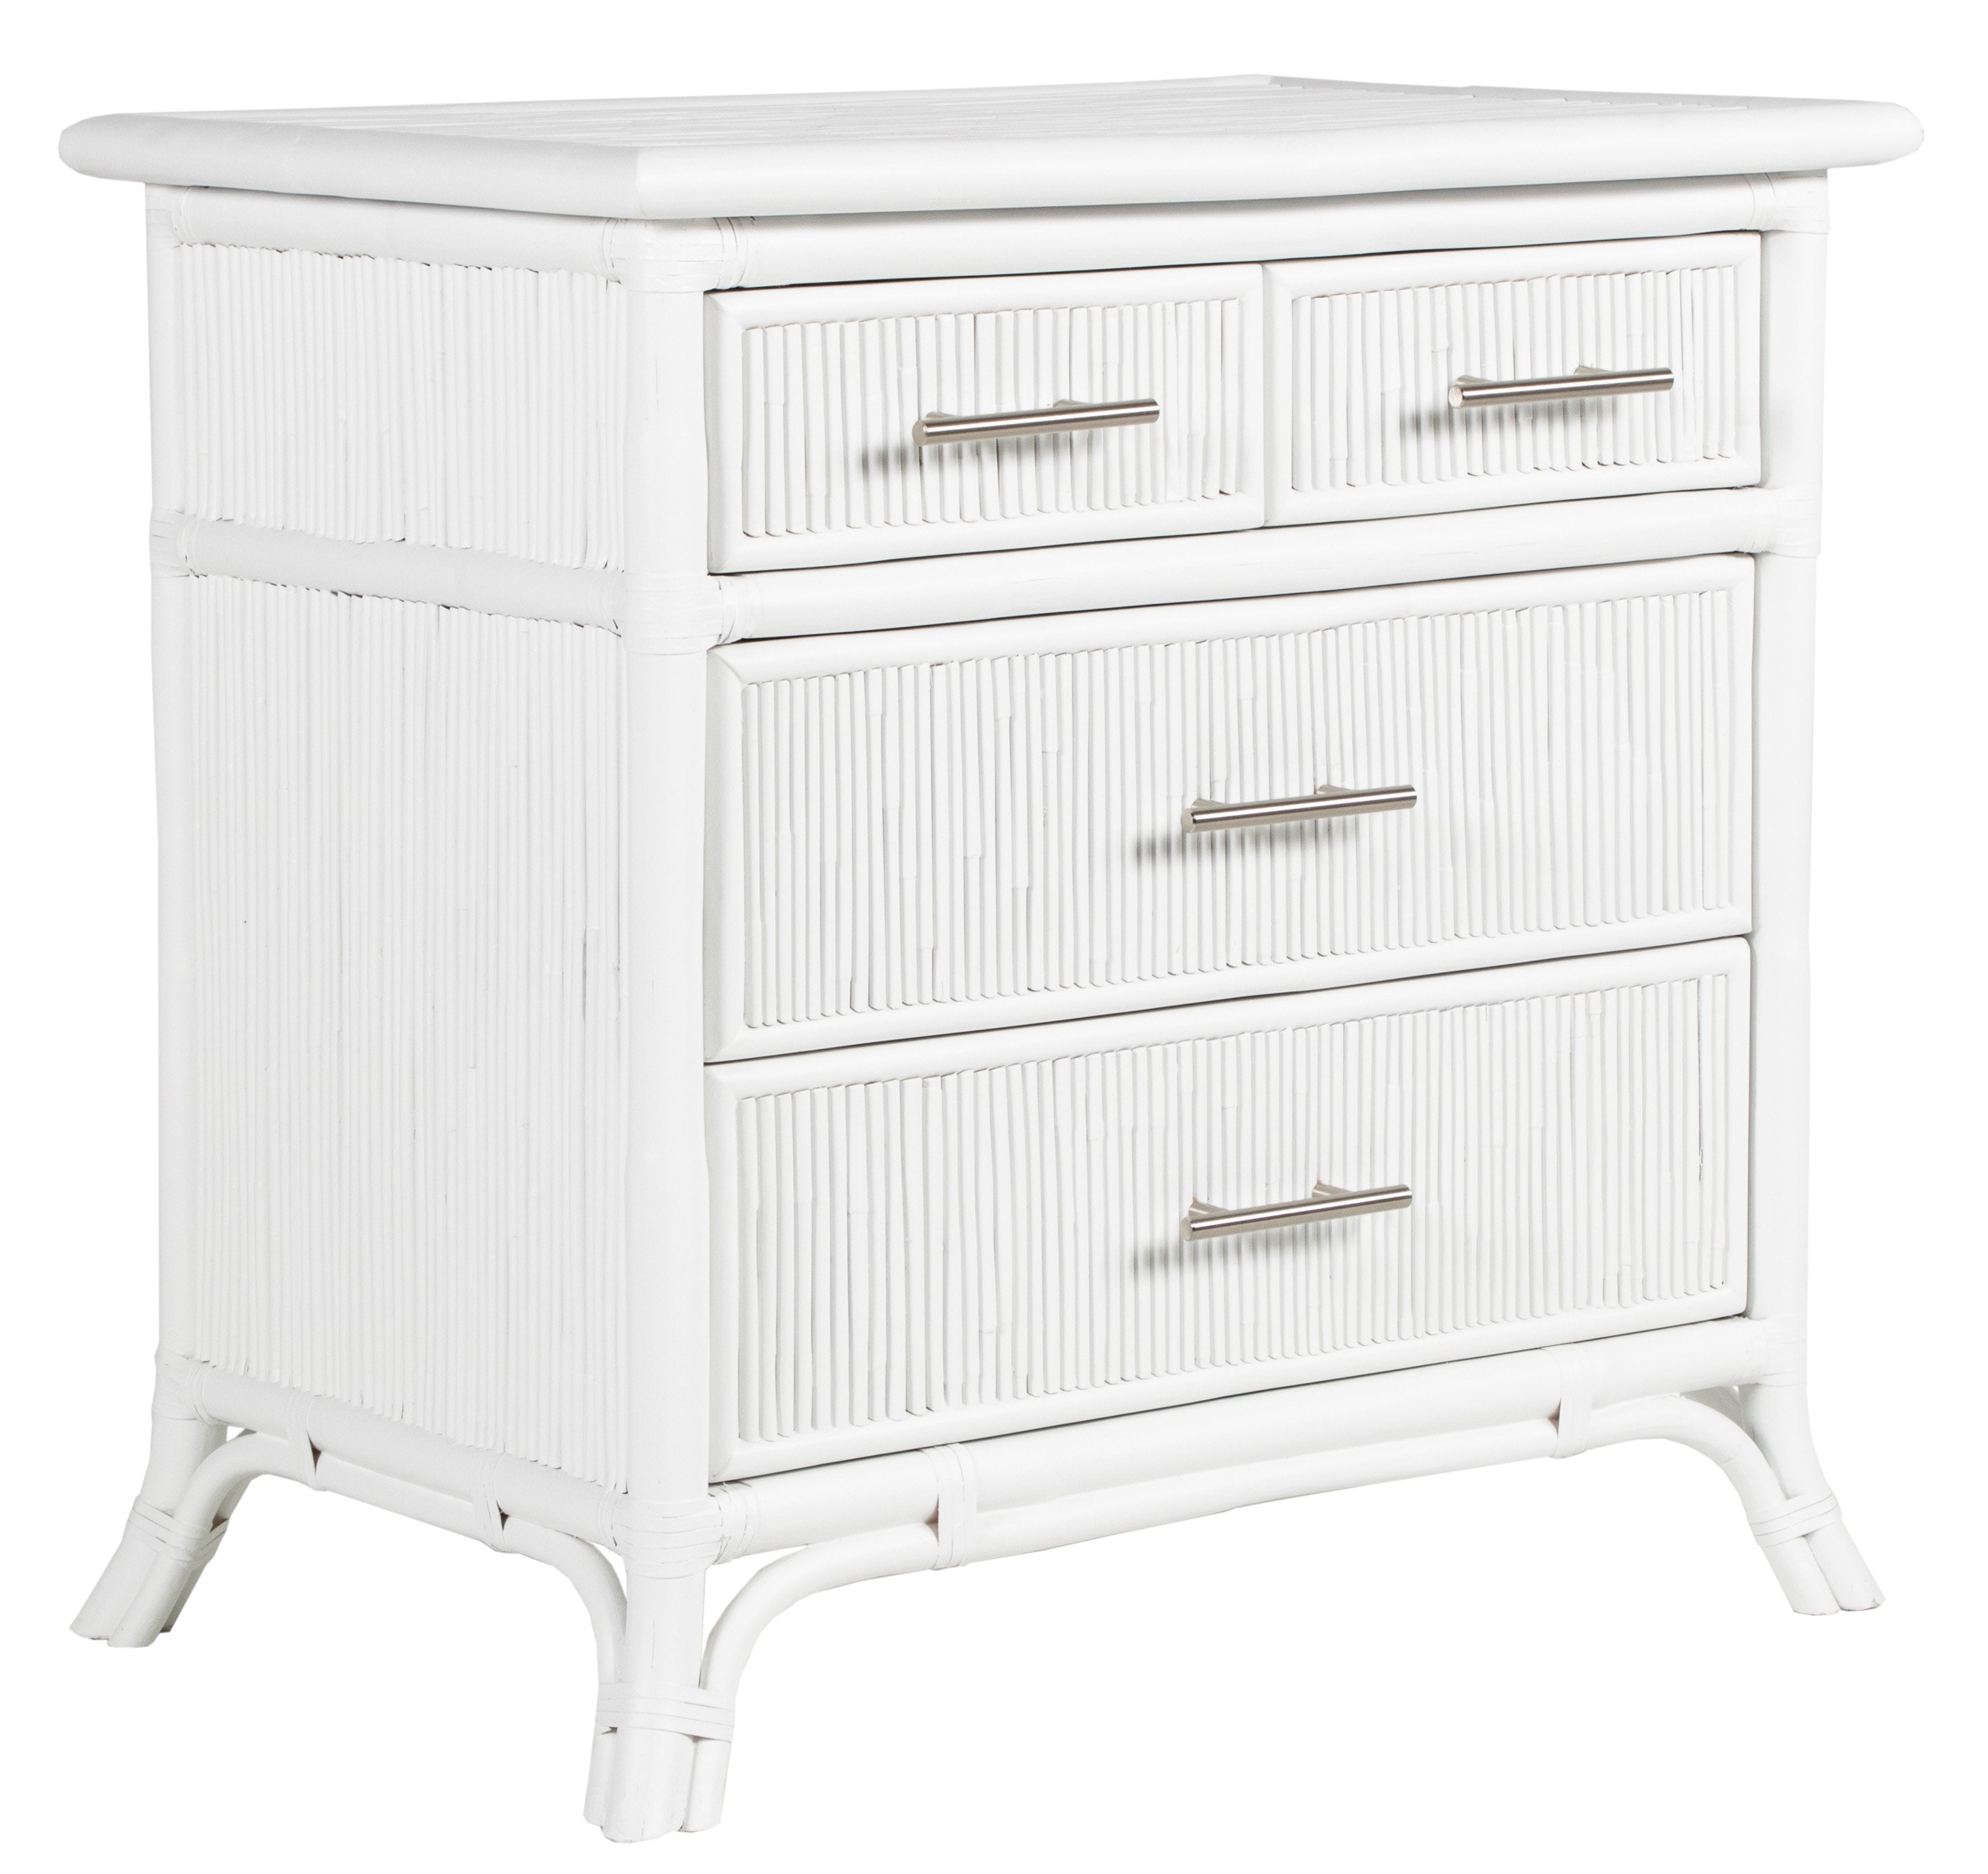 B2015_Pencil_Rattan_4-Drawer_Chest_Brushed_Nickel_Hardware_White_3Q_Front_View.jpg